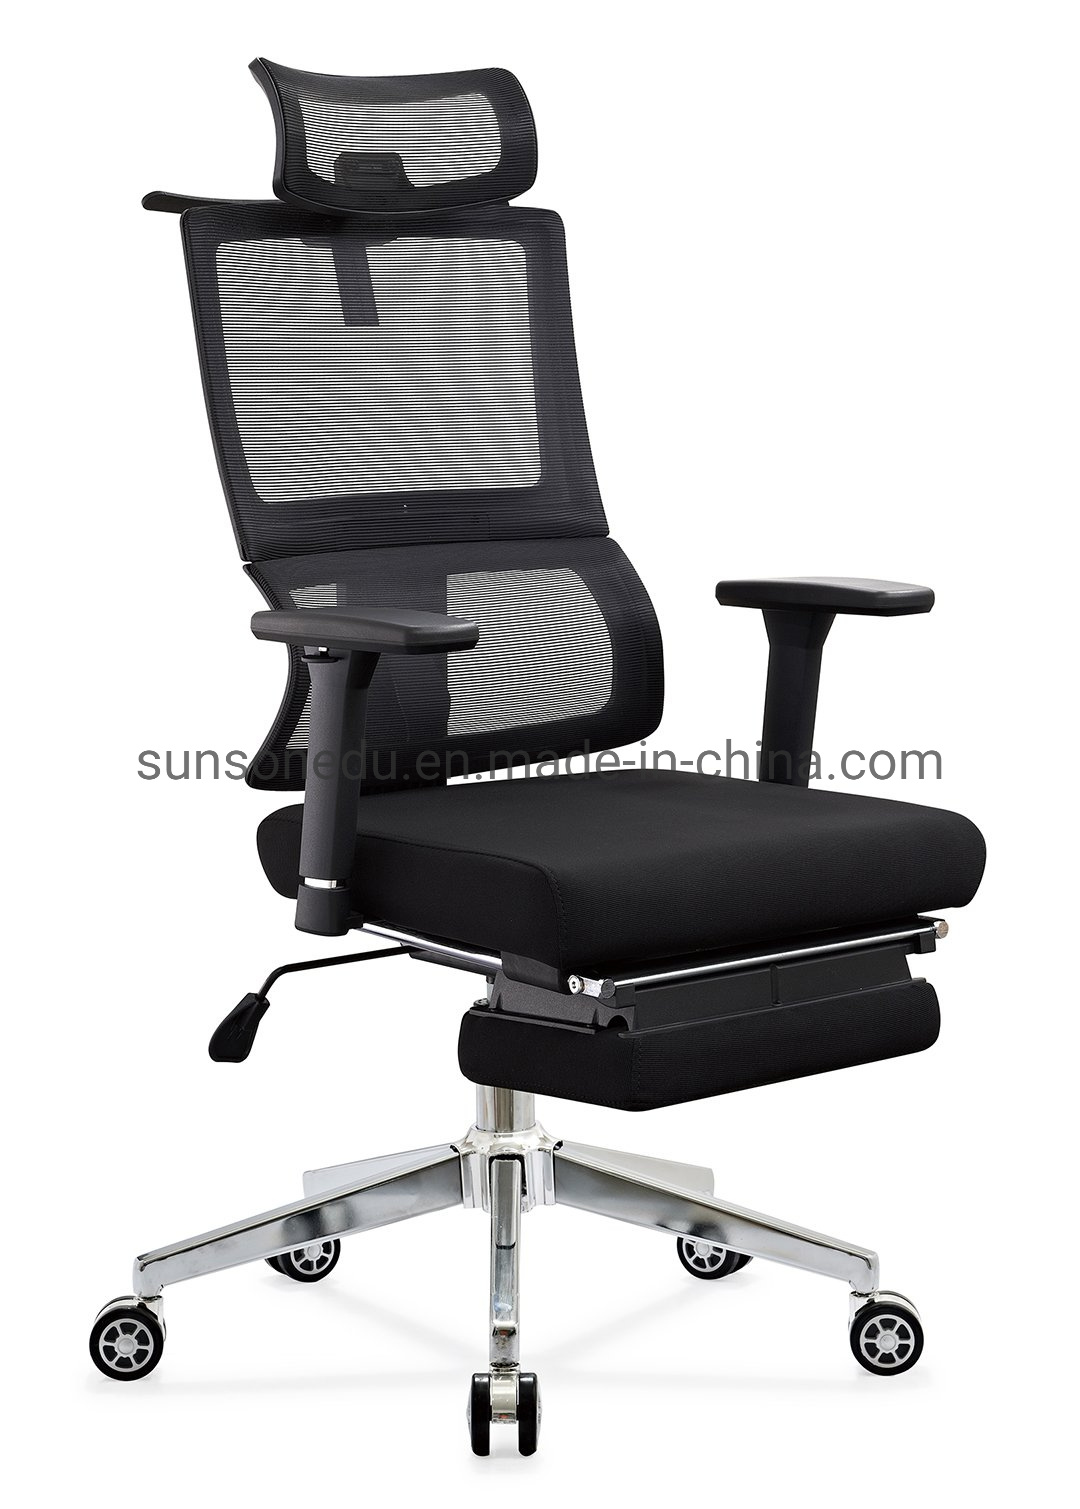 Hot Item High End Ergonomic Full Mesh Patented Manager Office Chair With Footrest